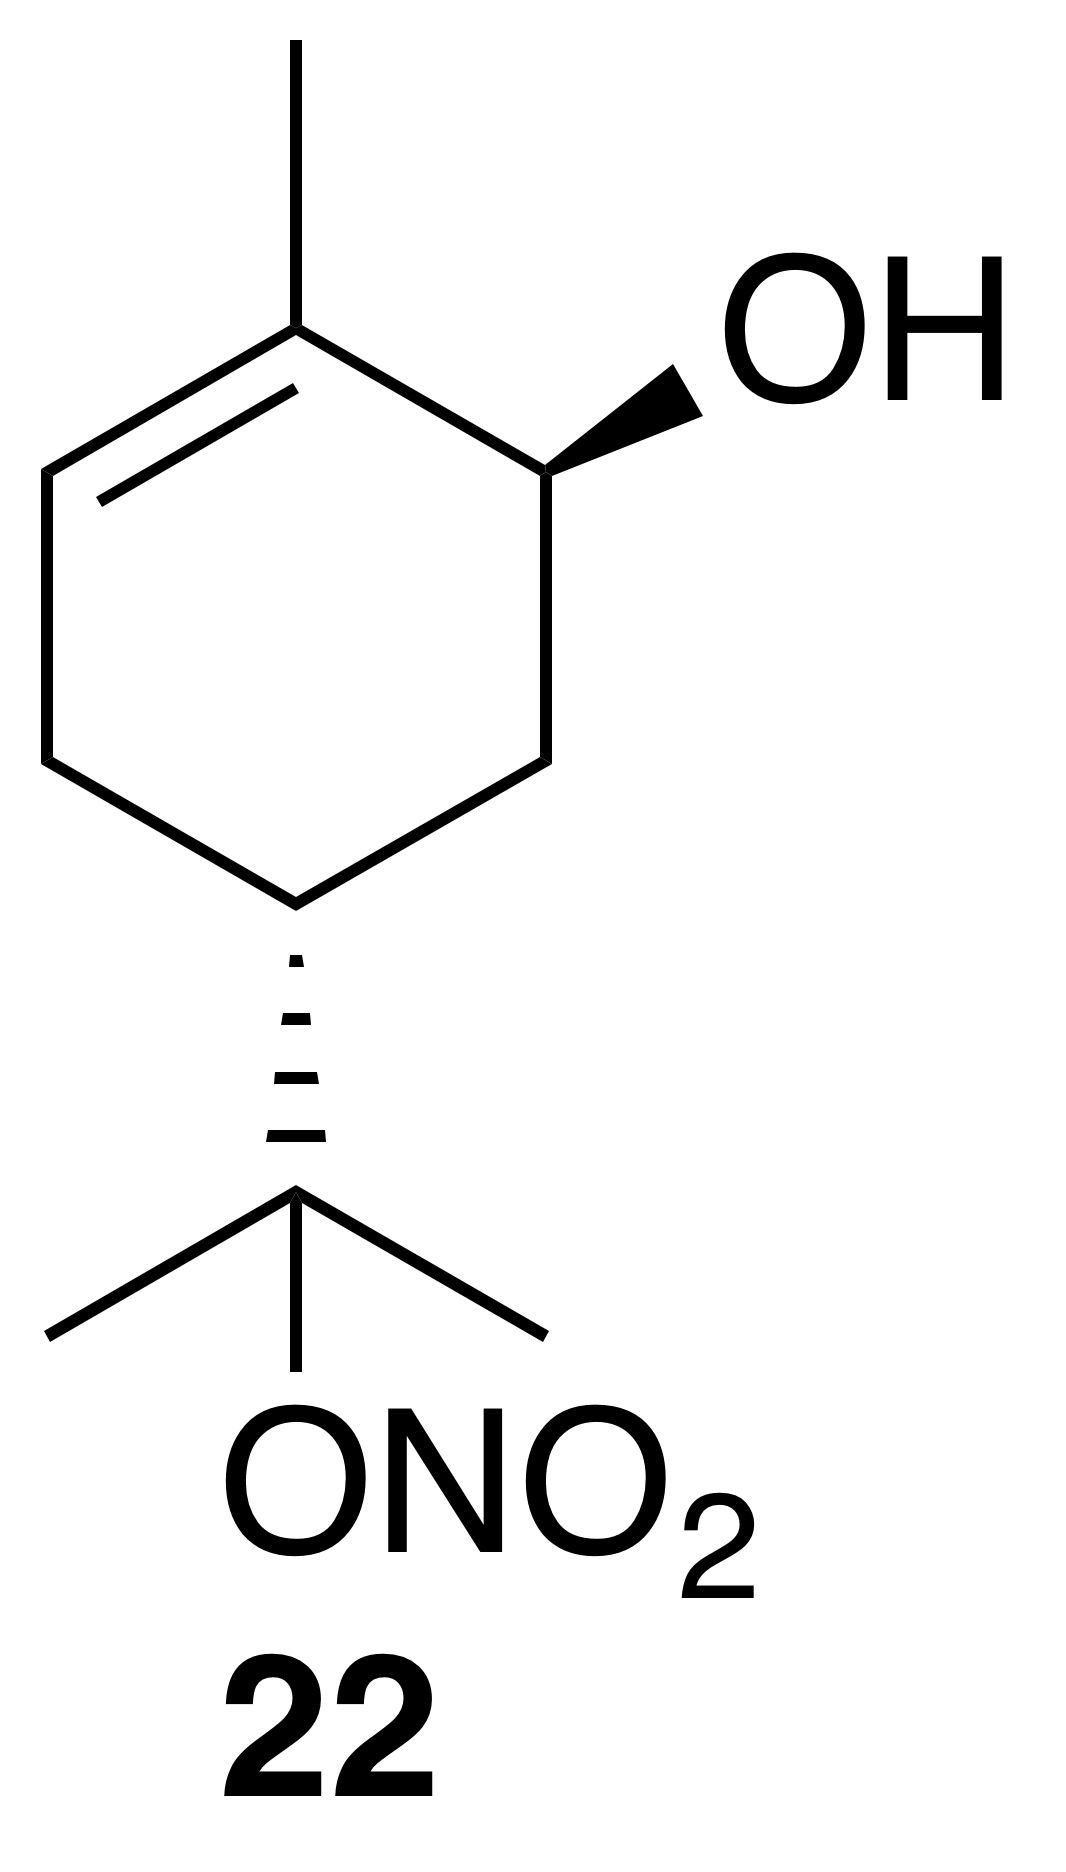 https://www.atmos-chem-phys.net/20/4241/2020/acp-20-4241-2020-g19